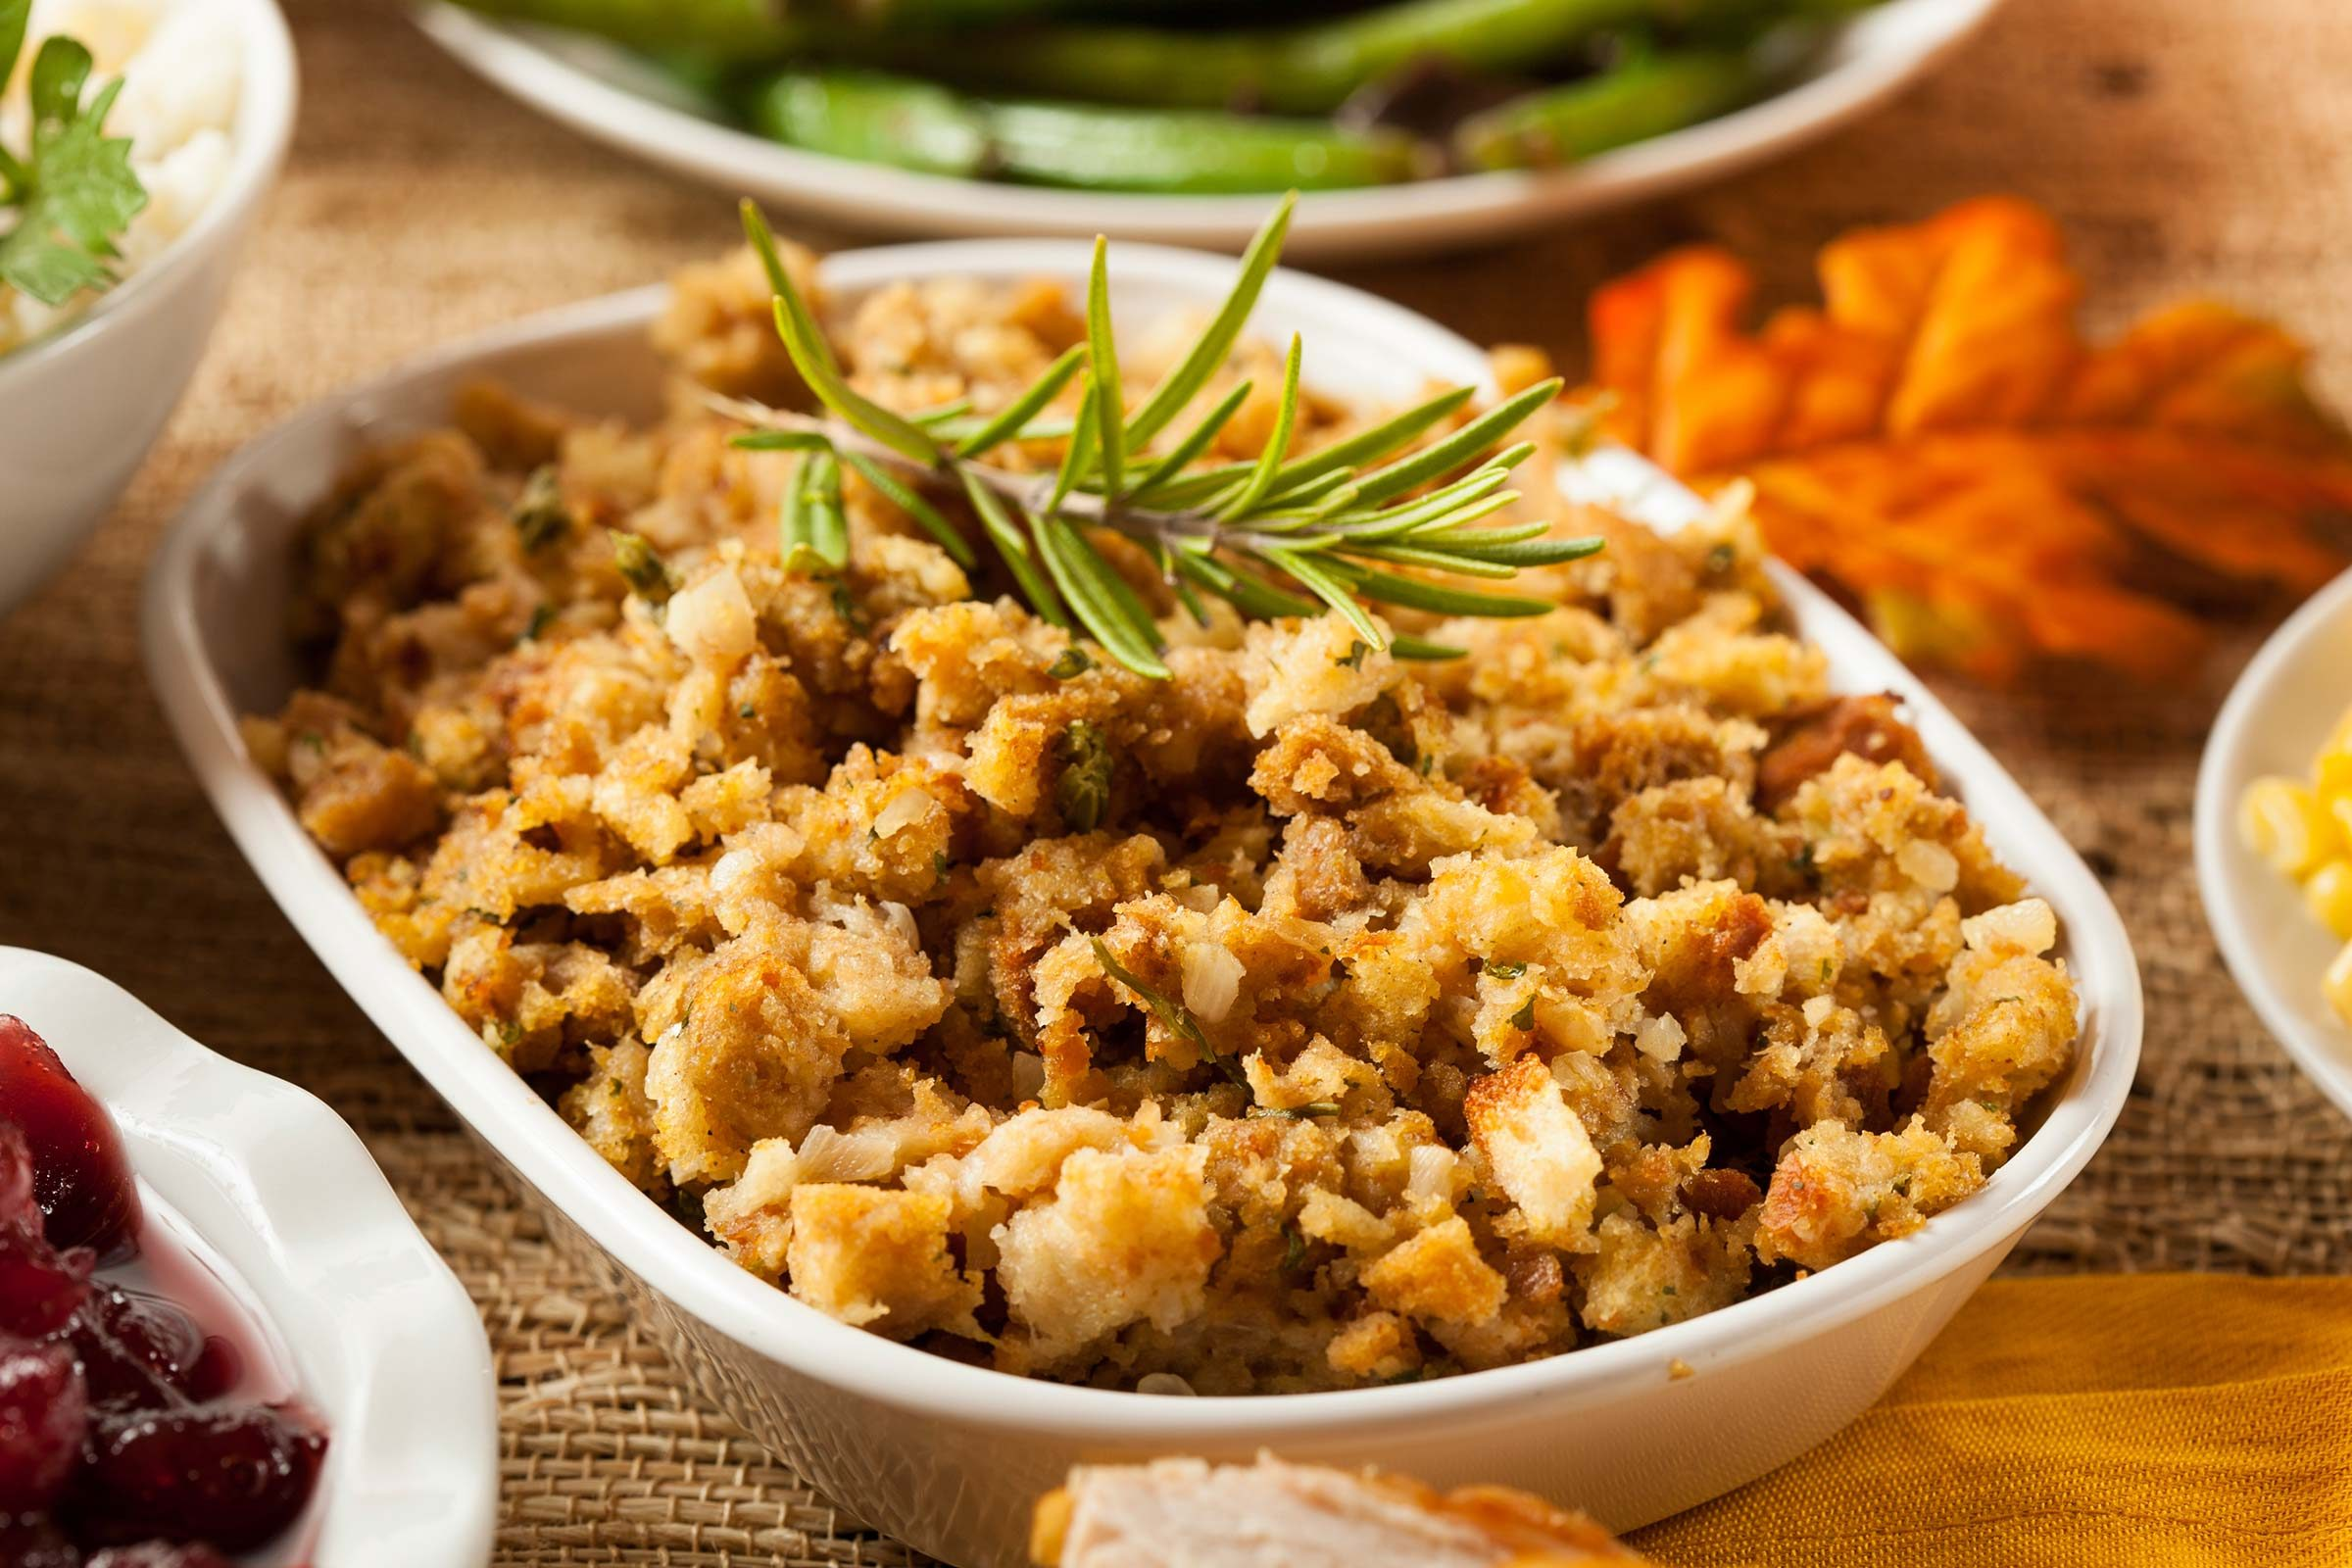 If you love stuffing